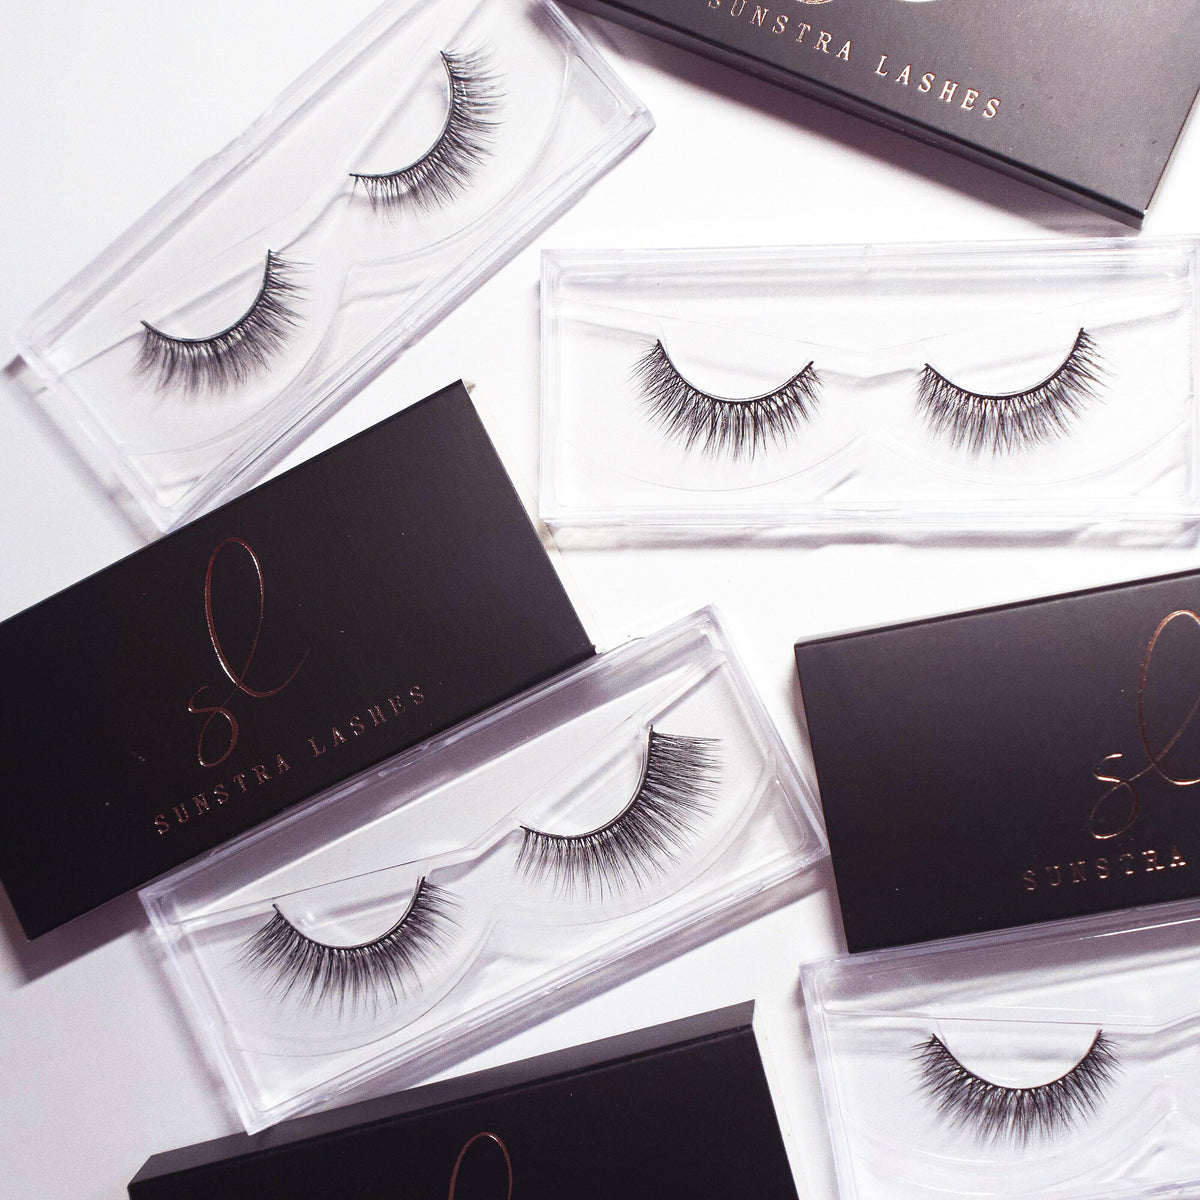 Sunsta Lashes: Feel Confident and Beautiful Online